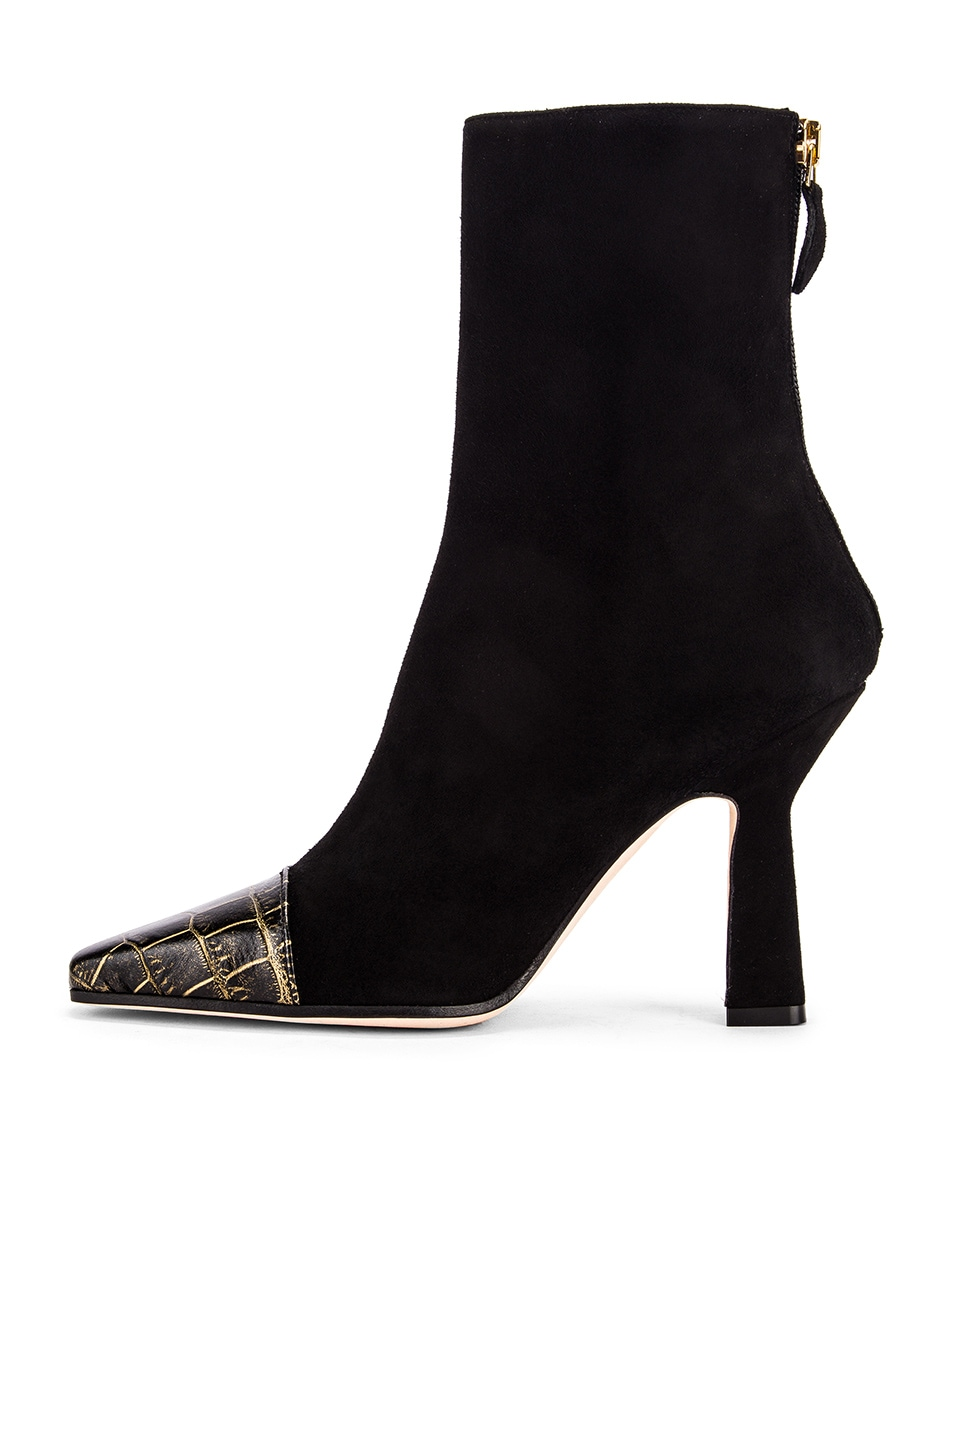 Image 5 of Paris Texas Suede and Croco Square Toe Ankle Boot in Black